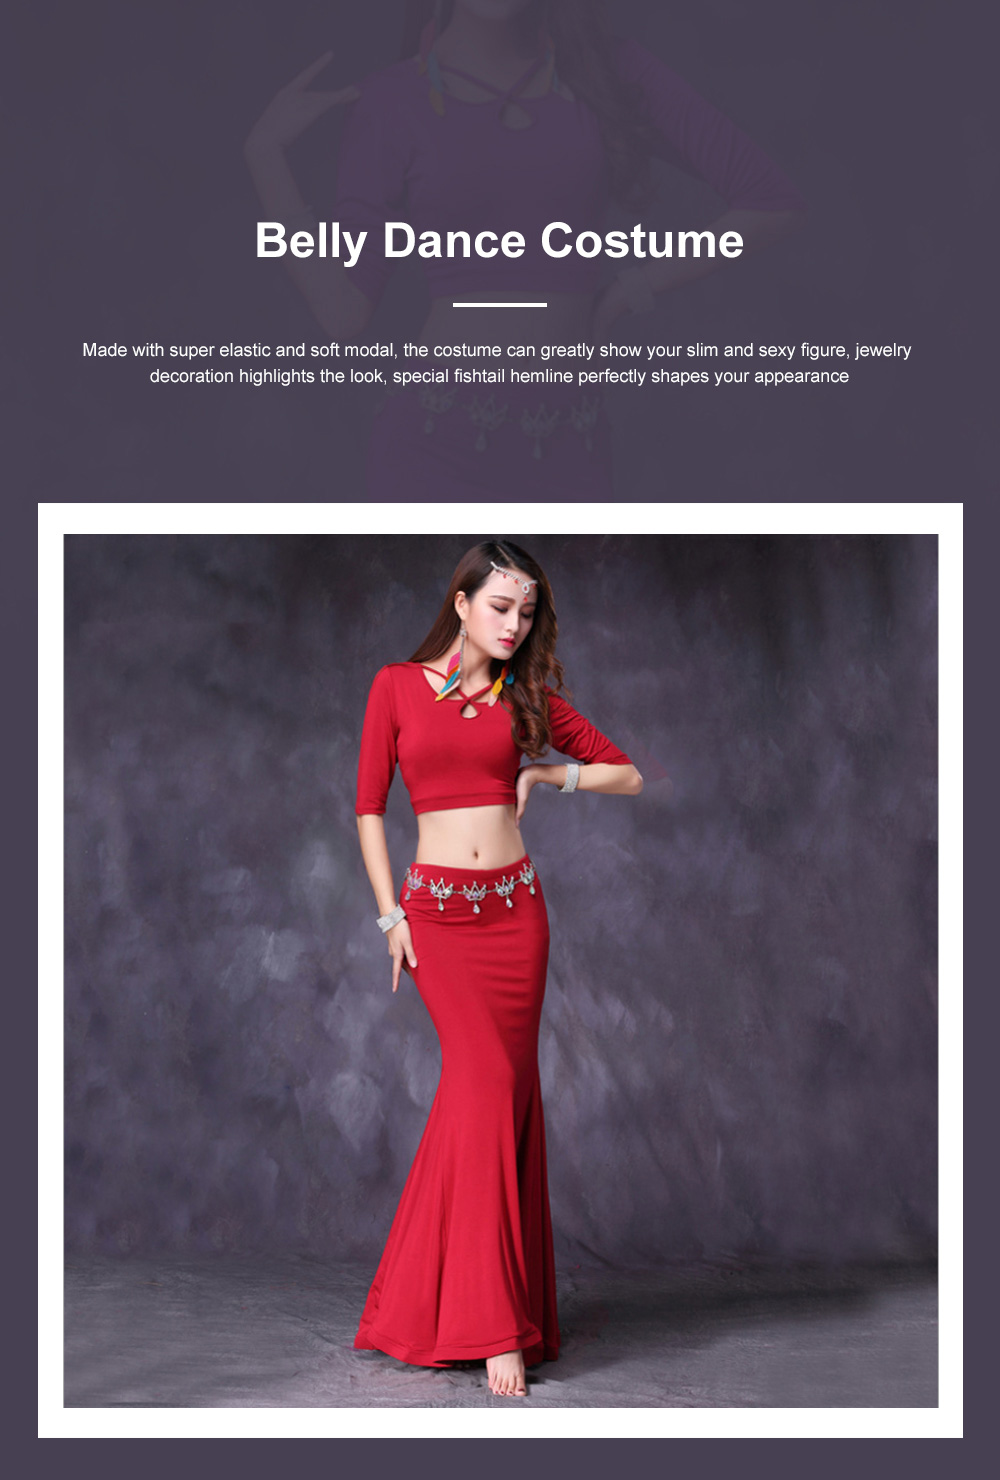 Belly Dance Costume Solid Color Set with Jewelry Decoration Fishtail Hemline Sheathe Dress 0